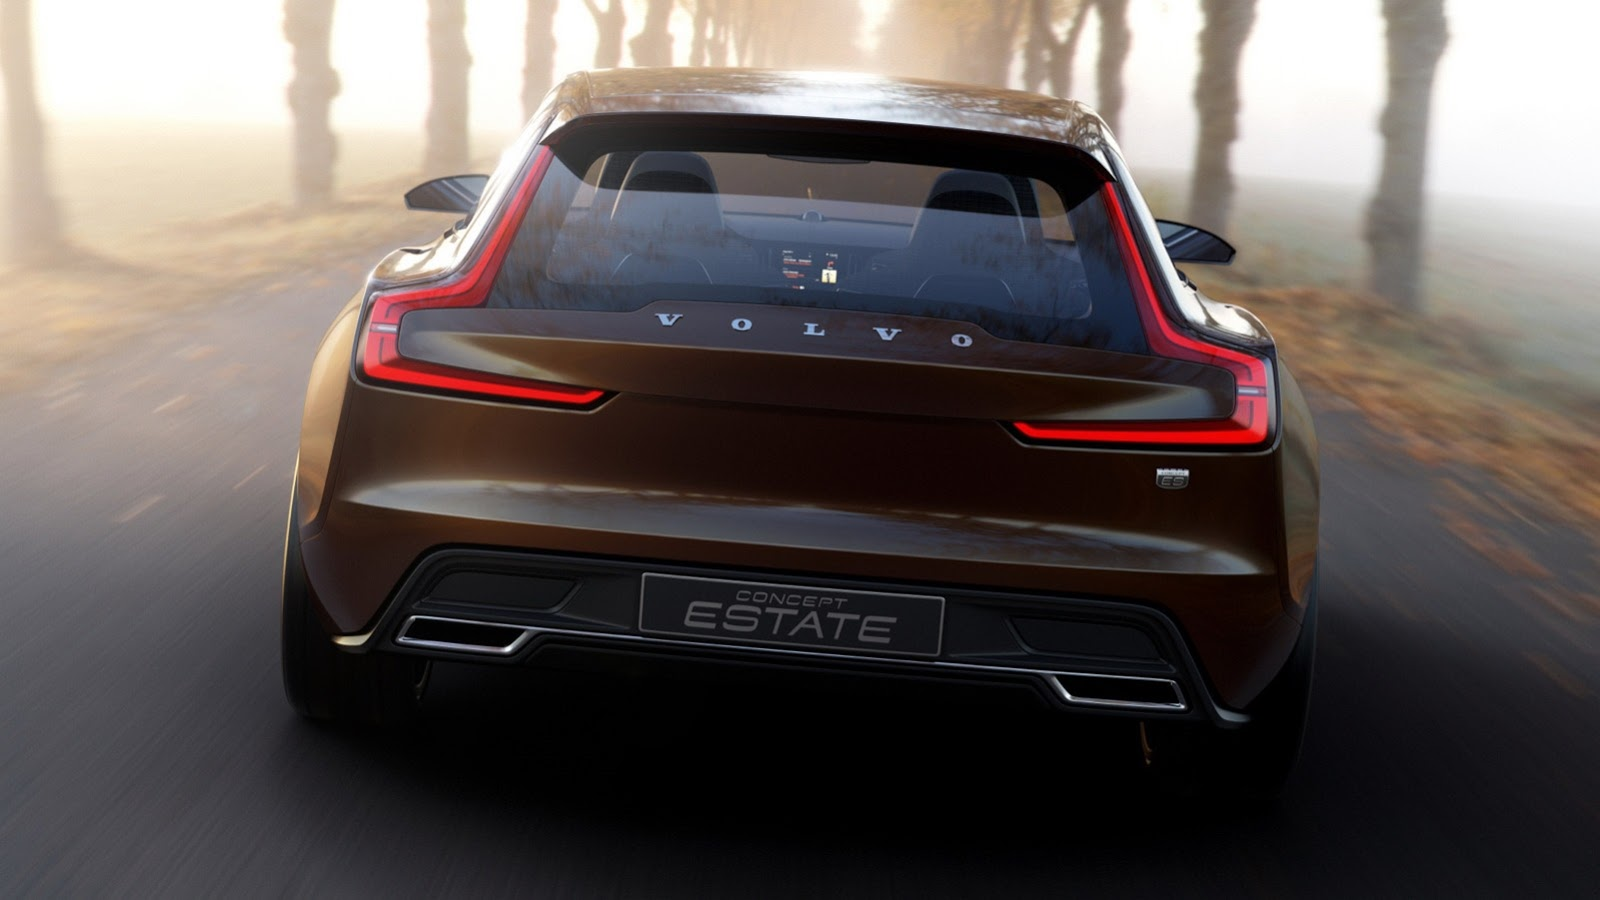 New Volvo V40 >> Volvo Cars - News: Volvo Estate Concept leaked ahead of debut